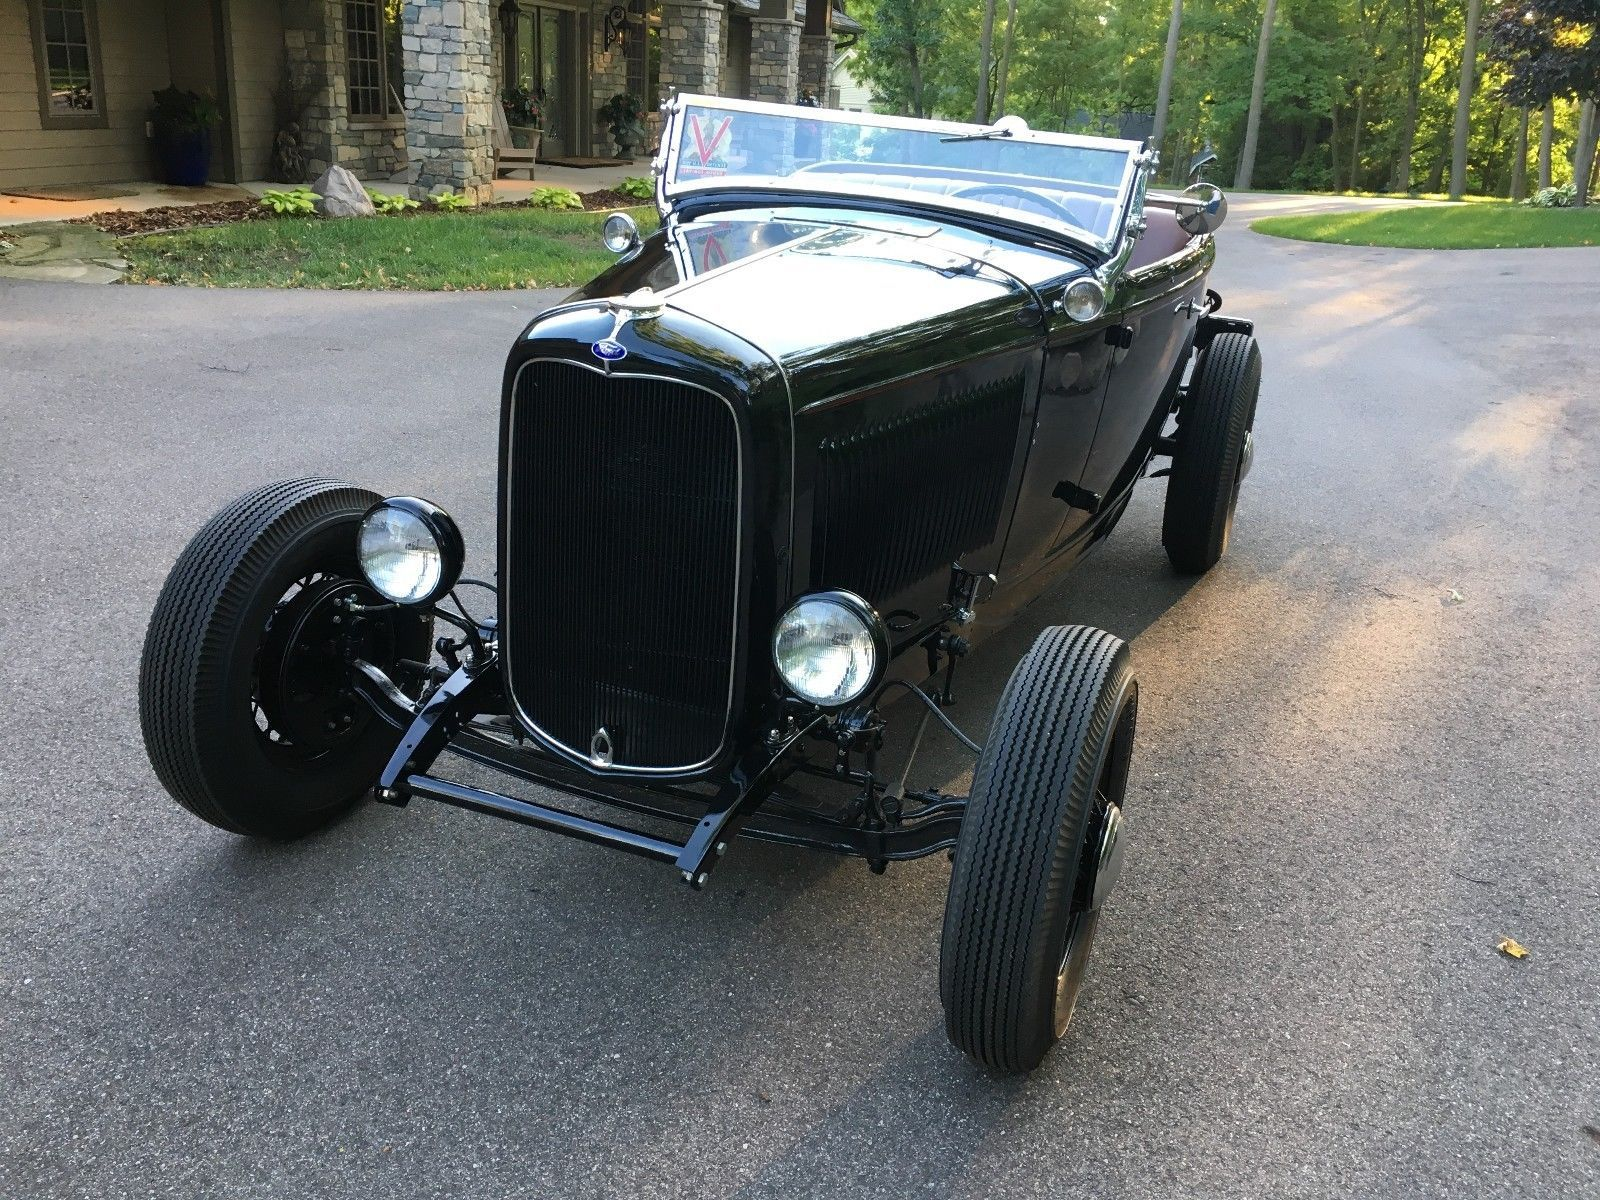 classy 1932 Ford Roadster hot rod | Hot rods for sale | Pinterest ...